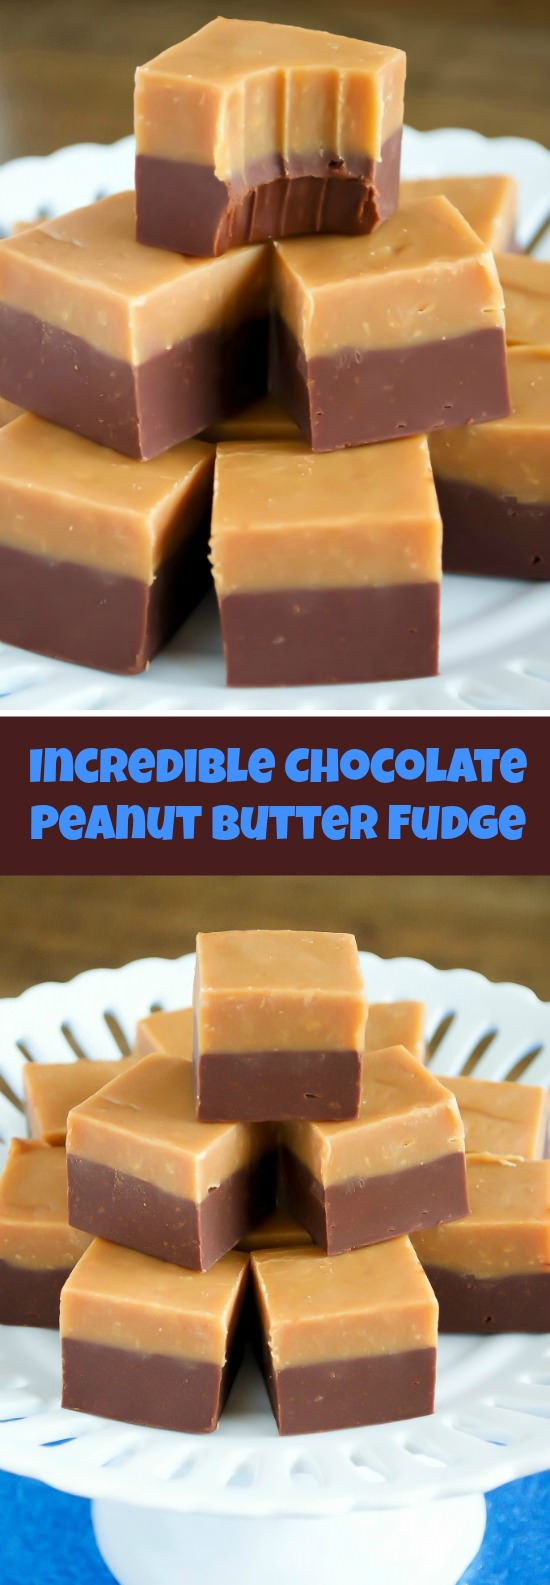 Chocolate Peanut Butter Double Decker Fudge is an indulgence everyone will rave over. It is surprisingly easy to make and tastes out of this world delicious.